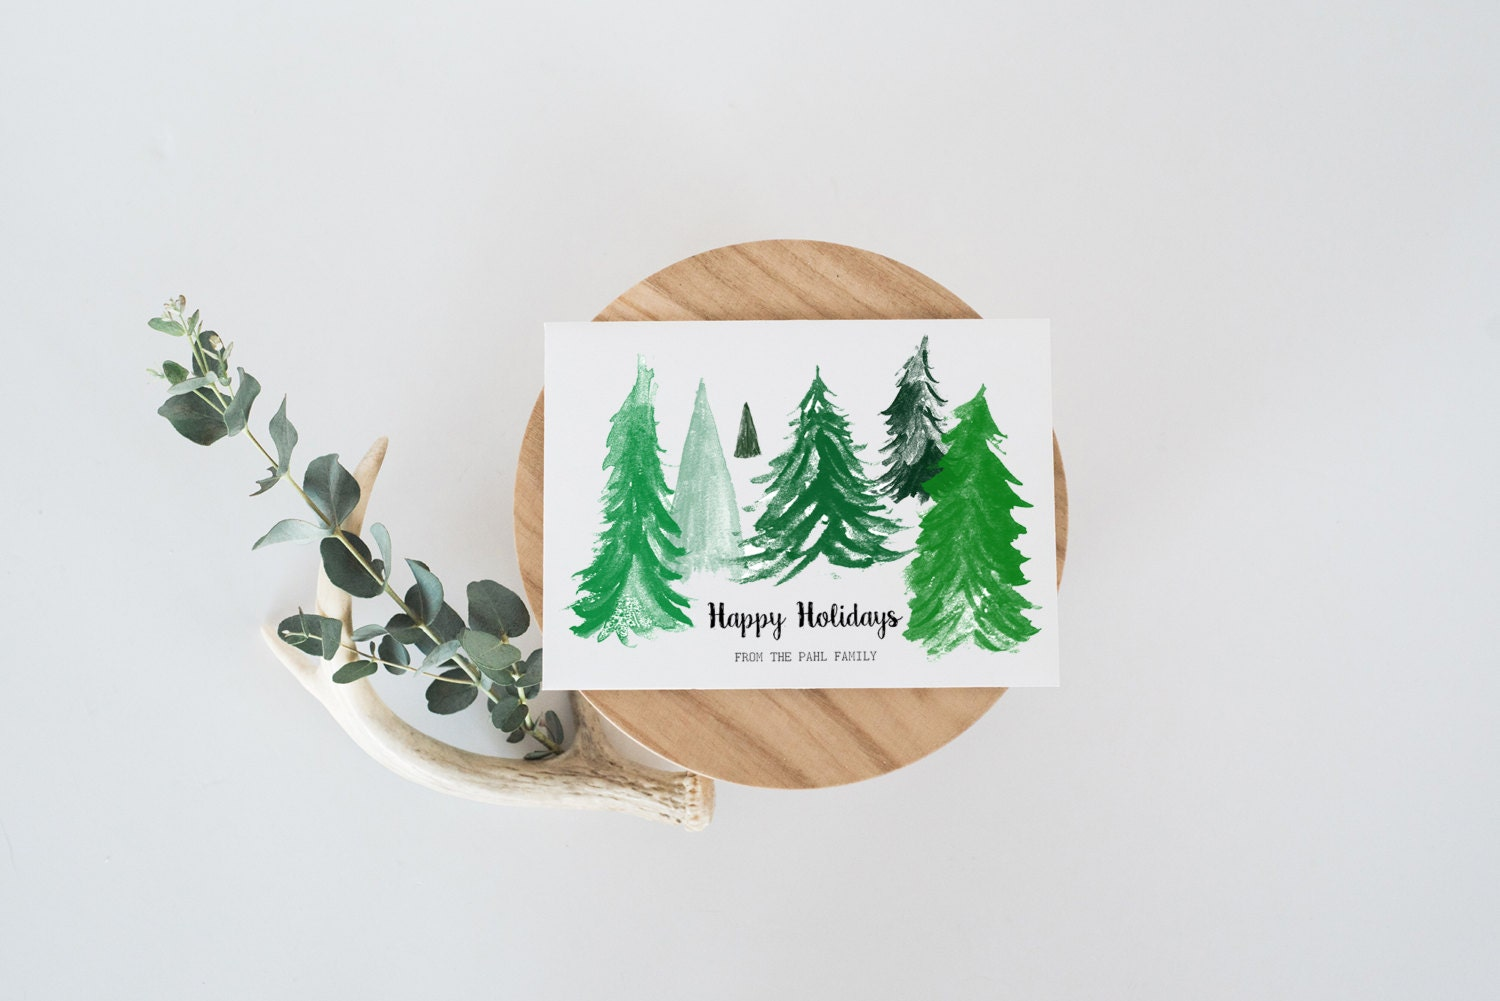 Personalized Holiday Cards - Happy Holidays Cards - Custom Holiday ...